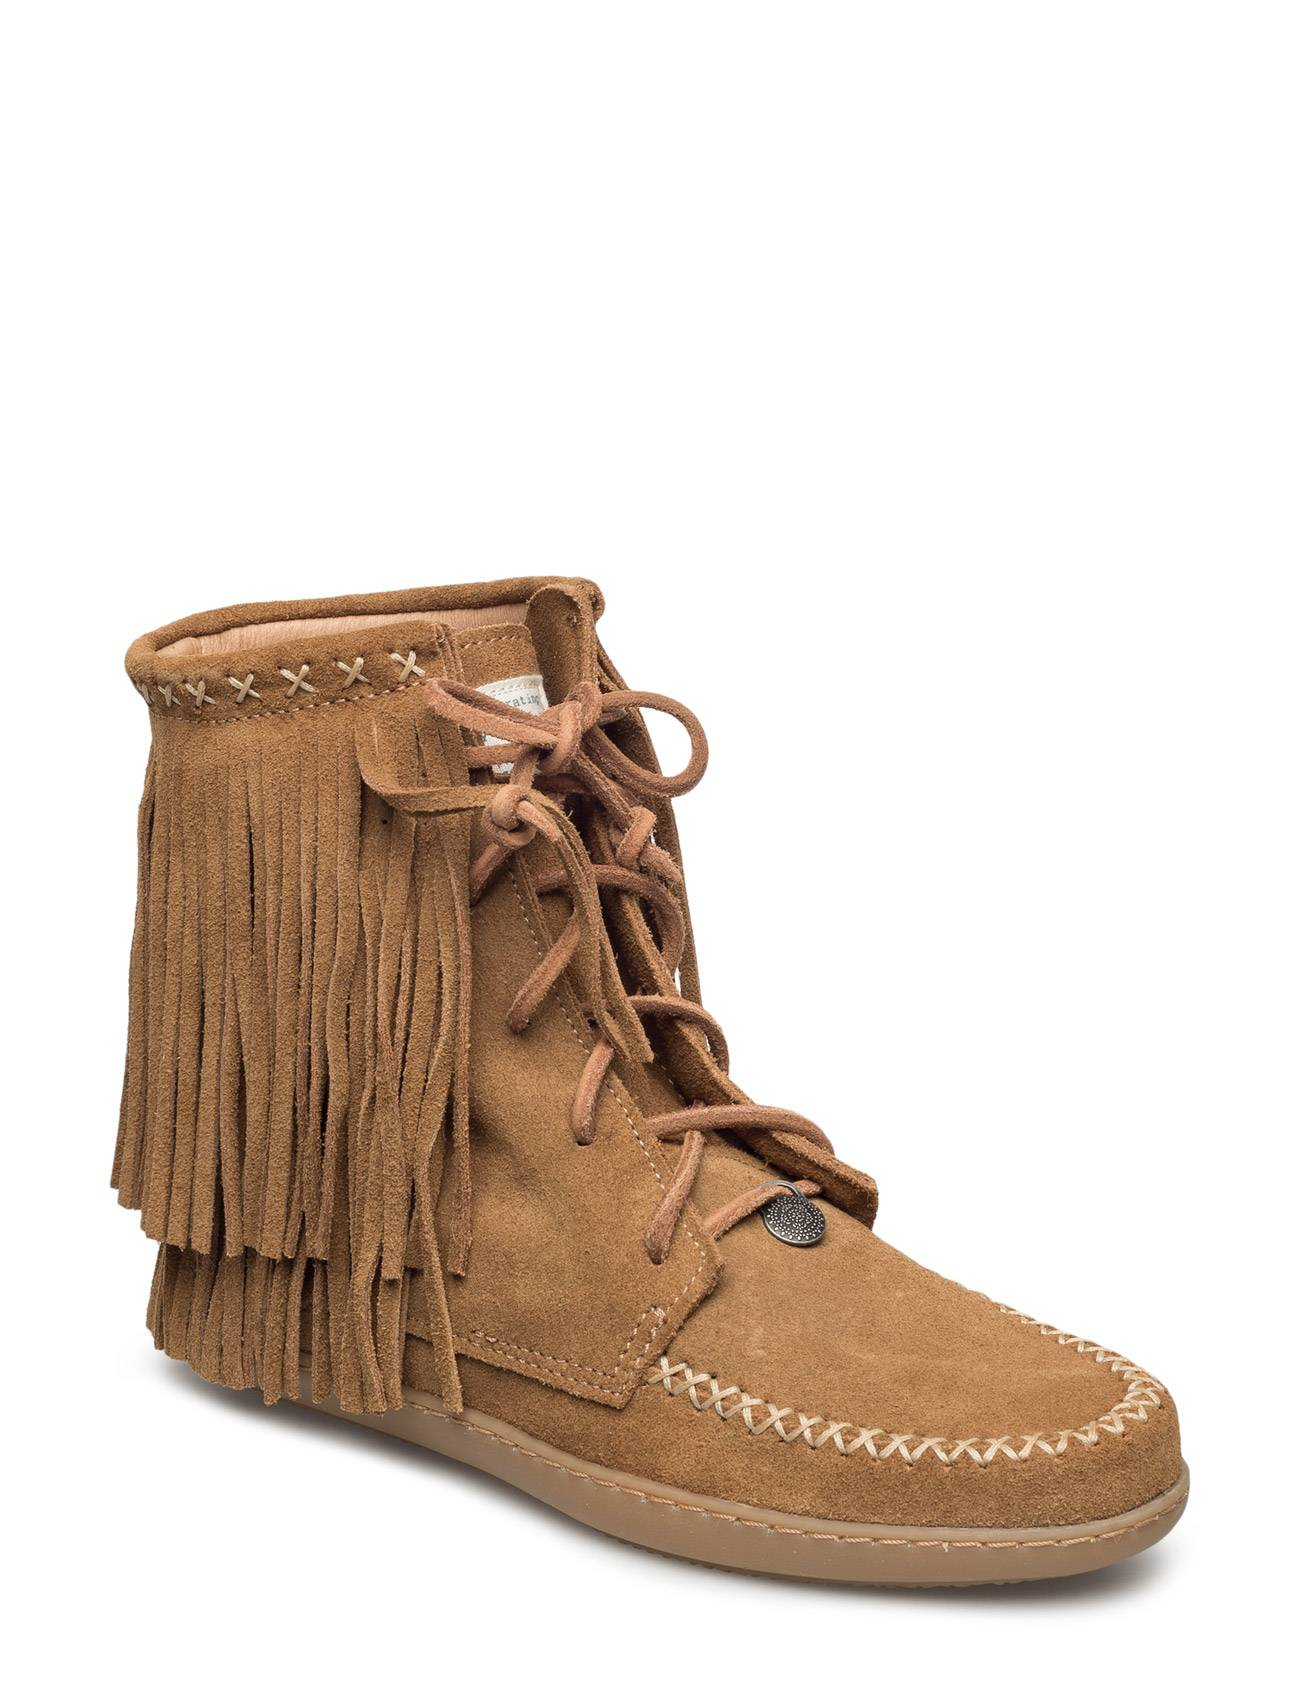 ODD MOLLY Walkabout Low Moccasin